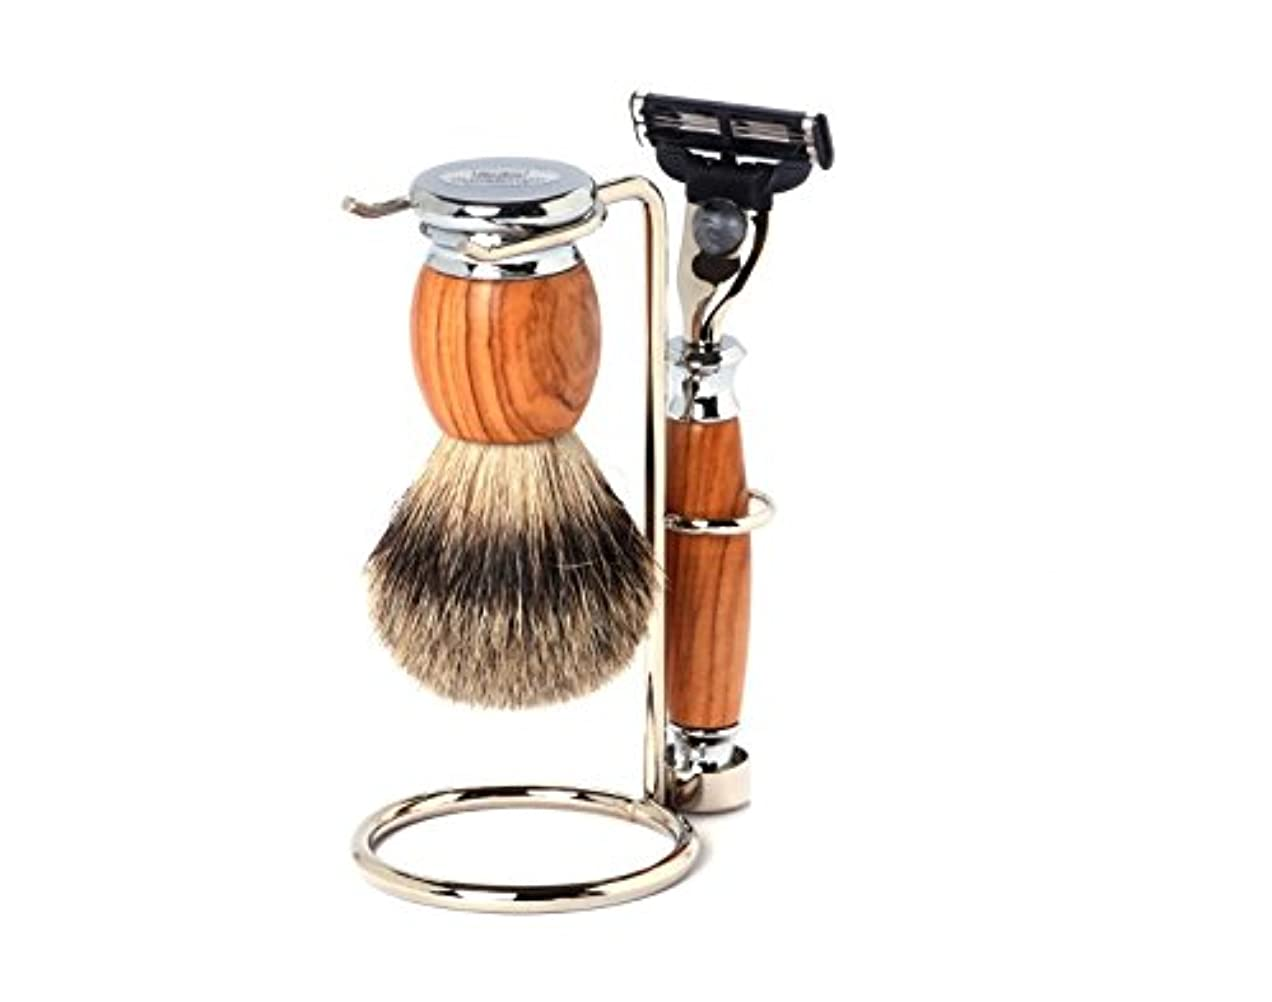 Shaving Set Olive, Mach3 razor, silvertip brush and stand - Hans Baier